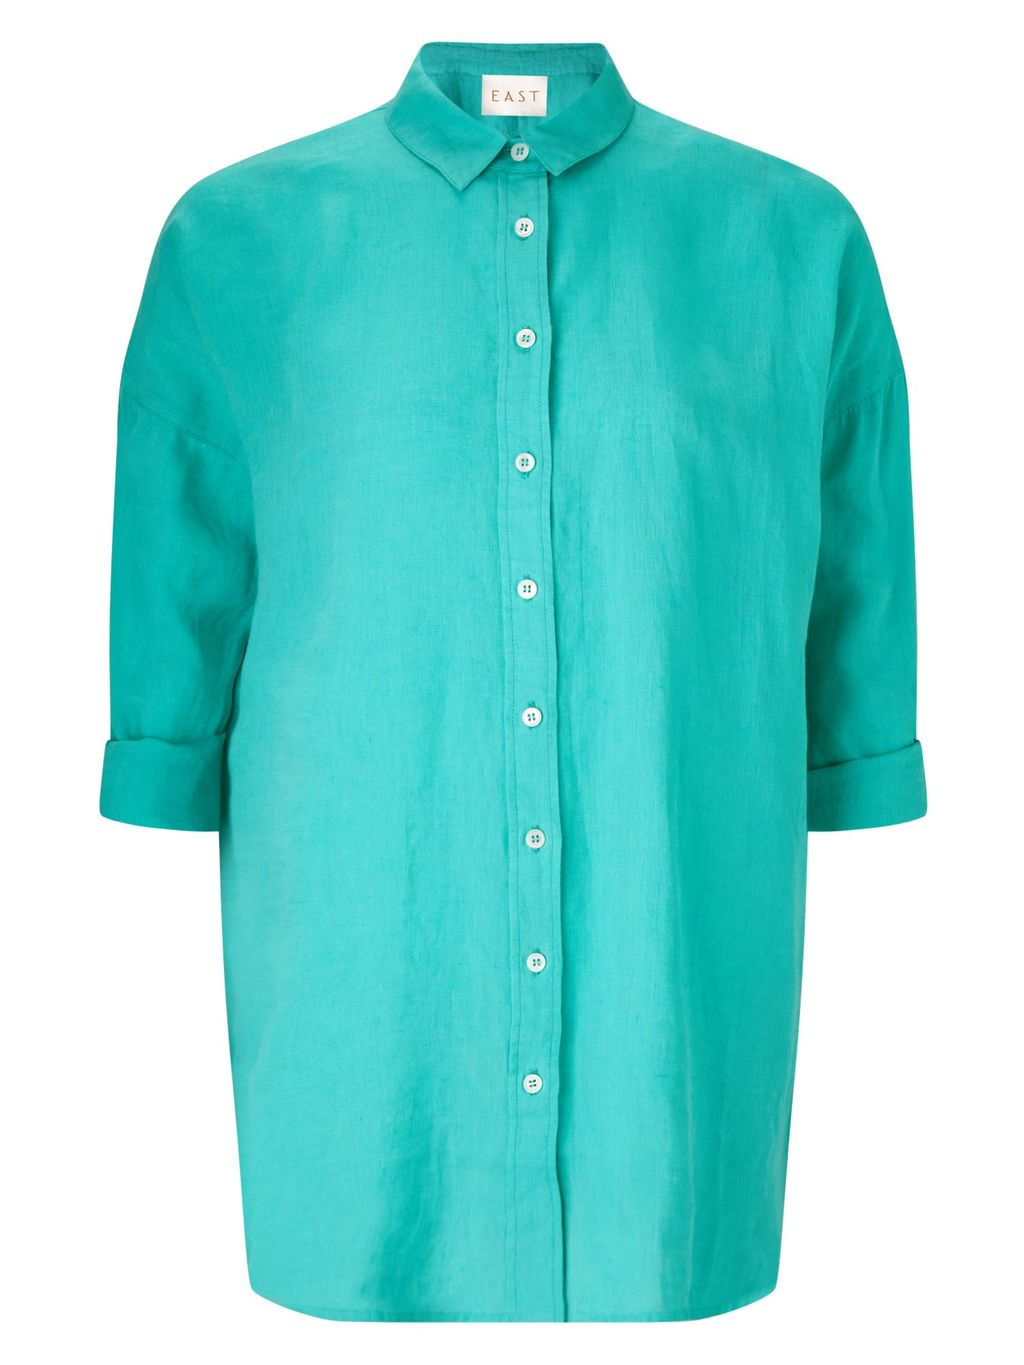 Oversized Linen Shirt, Green - neckline: shirt collar/peter pan/zip with opening; pattern: plain; style: shirt; hip detail: fitted at hip; predominant colour: mint green; occasions: casual; length: standard; fibres: linen - 100%; fit: body skimming; sleeve length: 3/4 length; sleeve style: standard; texture group: linen; pattern type: fabric; season: s/s 2016; wardrobe: highlight